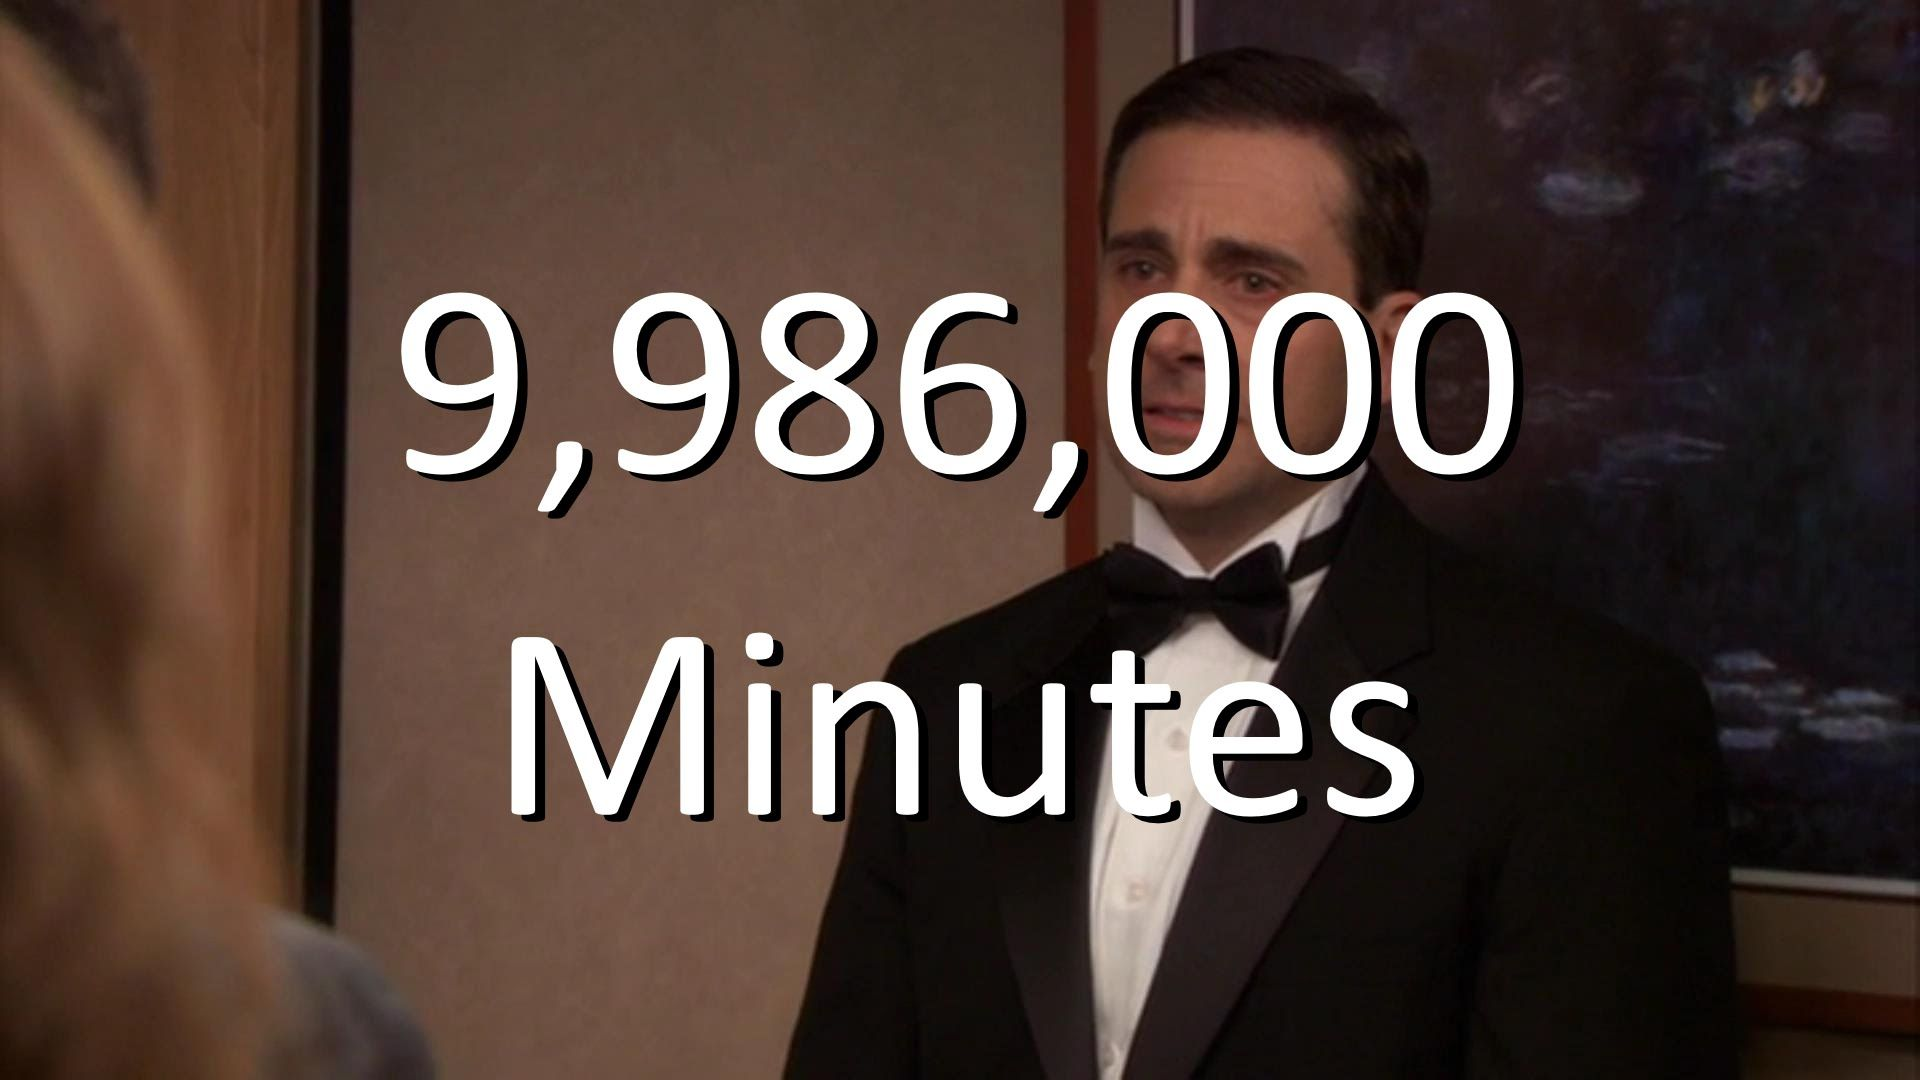 The Office 9 986 000 Minutes Michael Scott Farewell Song Office Jokes Office Quotes Funny Office Quotes Michael